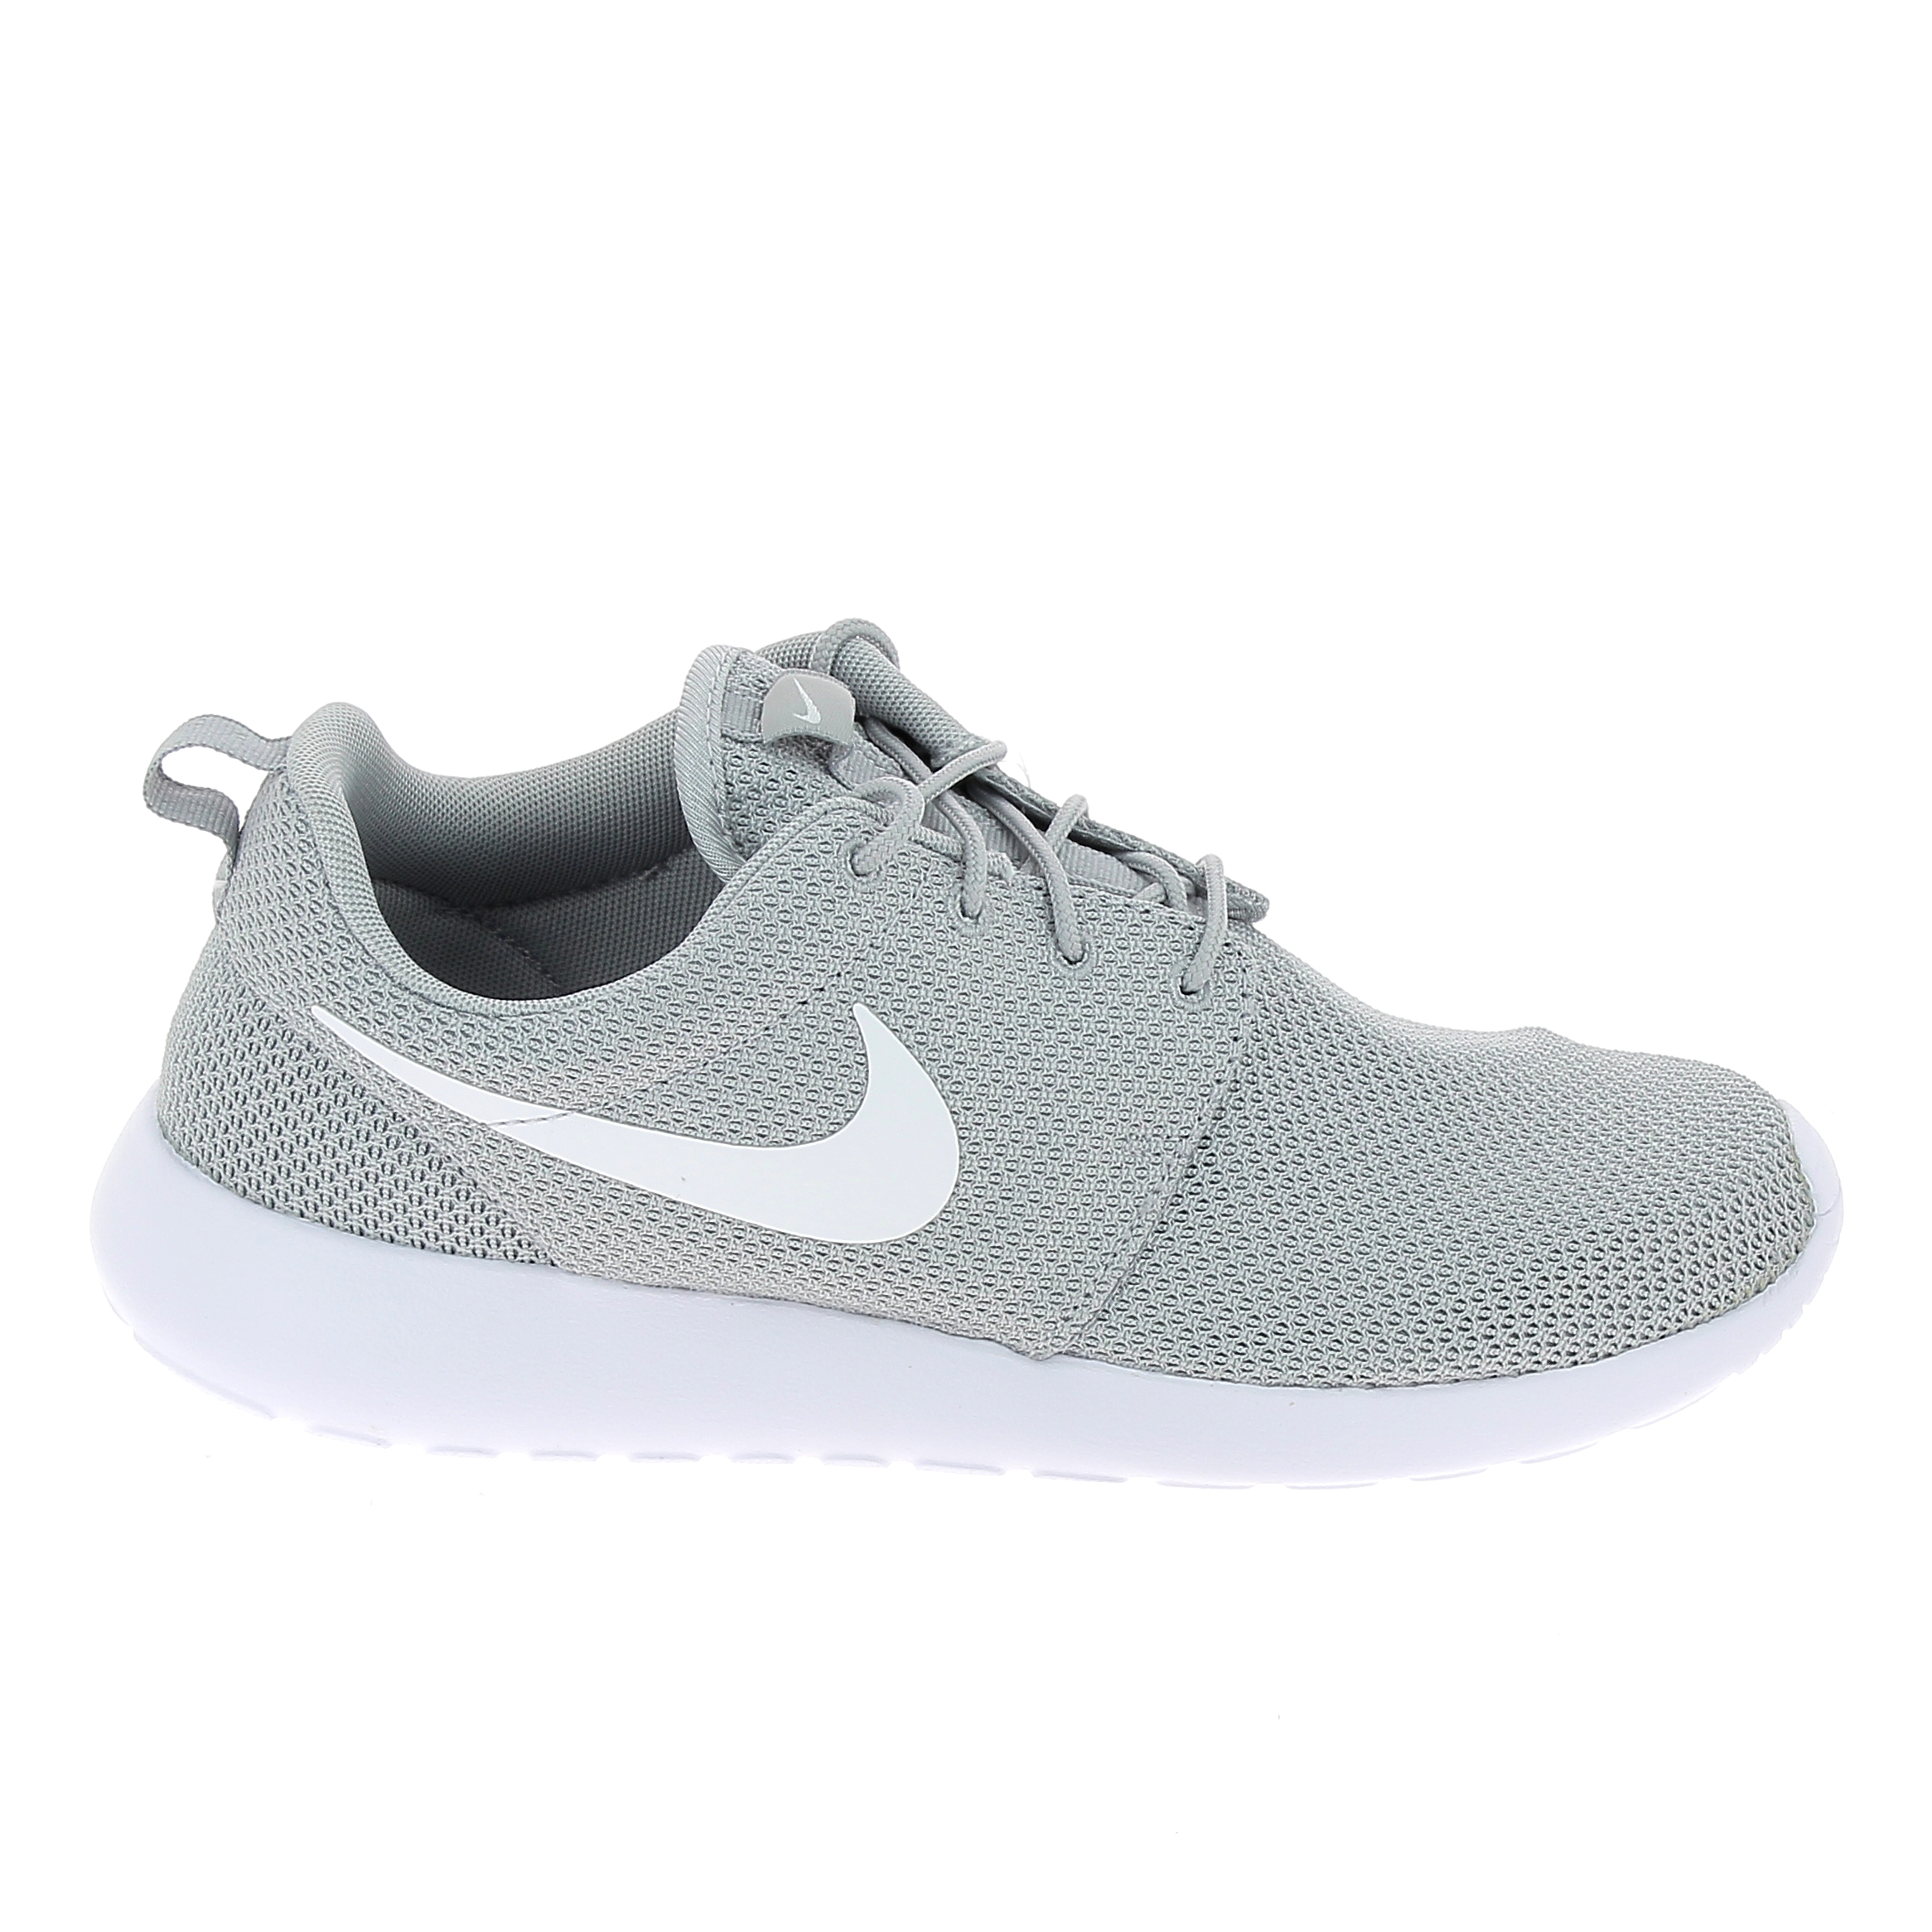 la meilleure attitude f81cd e6c14 Basket mode, SneakerBasket mode - Sneakers NIKE Roshe One Gris Blanc